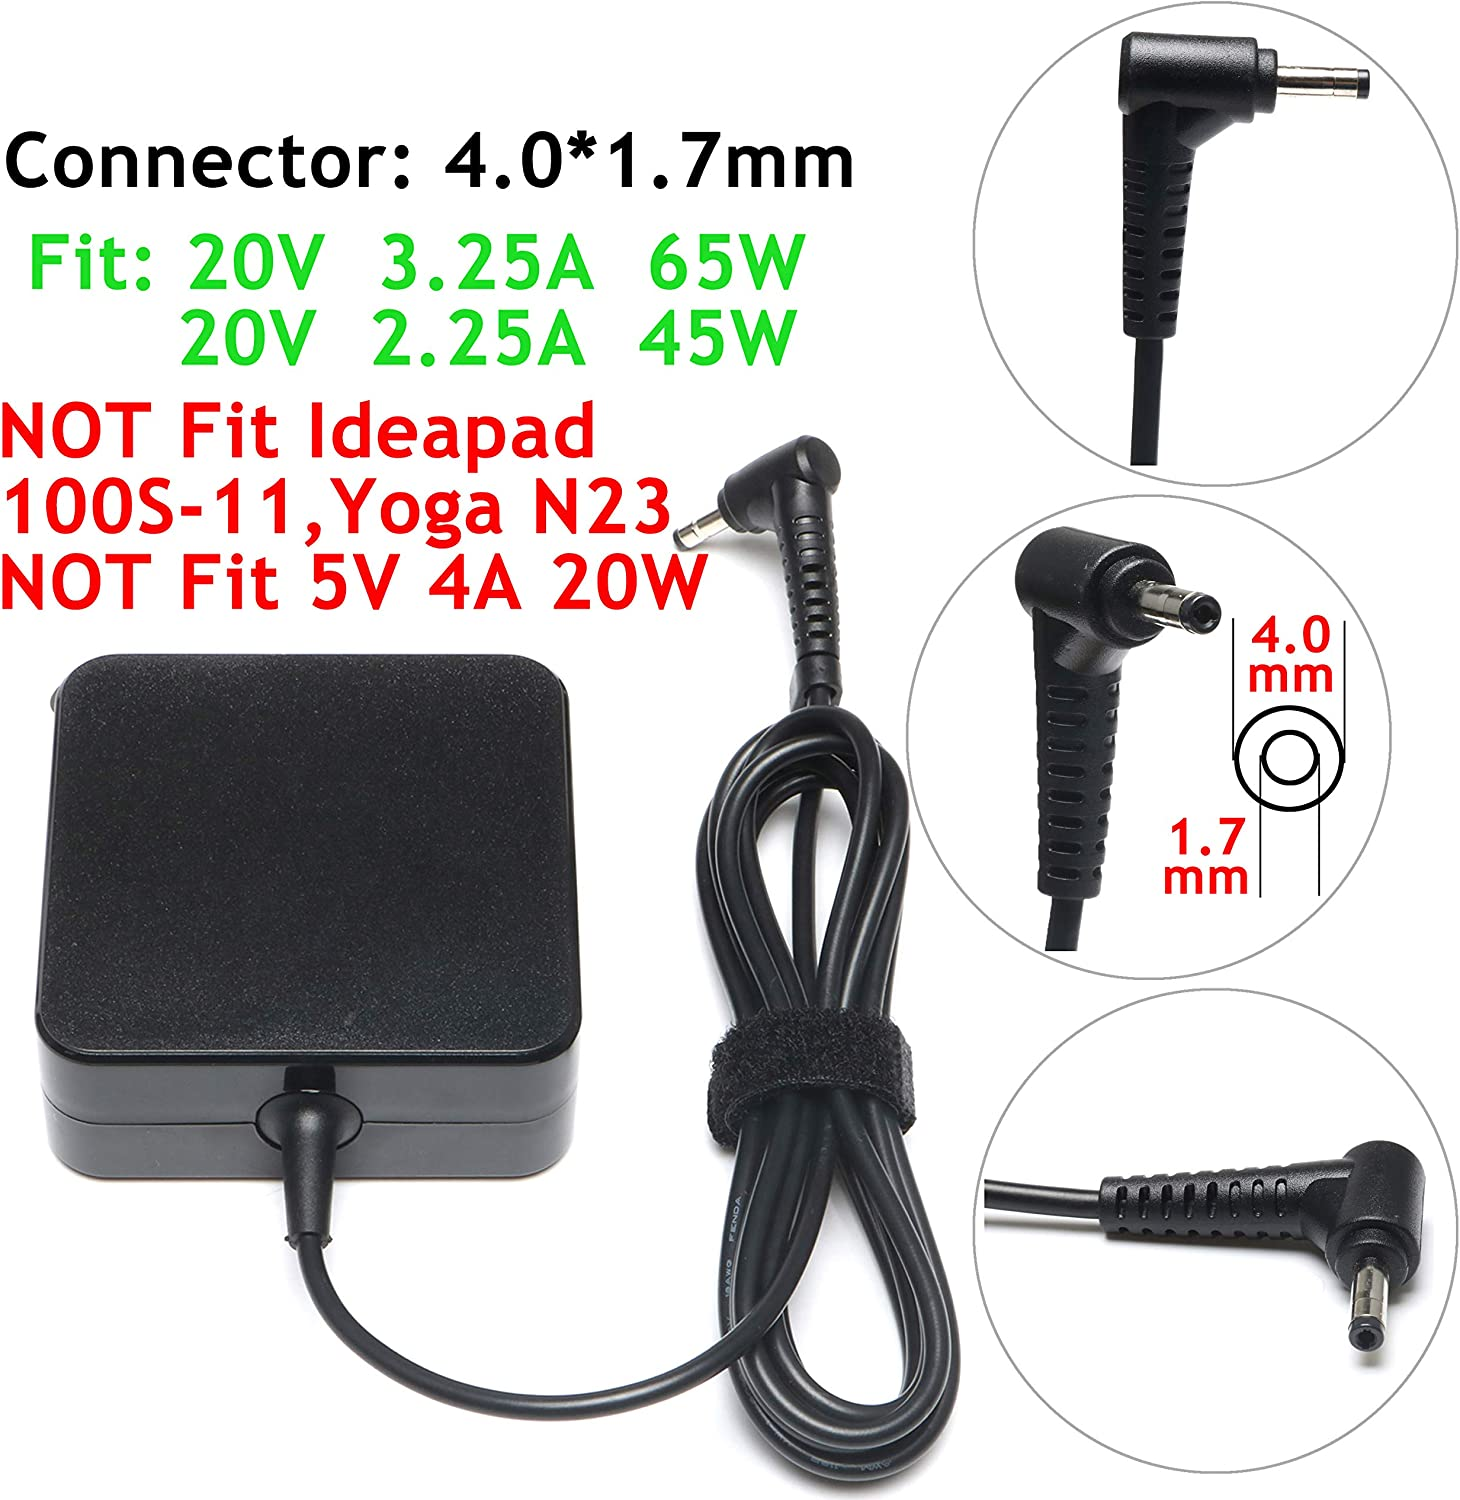 45W 65W AC Charger for Lenovo Ideapad 110 110S 310 320 330 510 710:81C9 81CA 81CW 81CX 80QQ 80R9 80S6 80SA 80SF 80T7 80TJ 80UD 80V5 80WG 80XM 81A4 81A5,Chromebook N22 N23 N42 Power Supply Adapter Cord